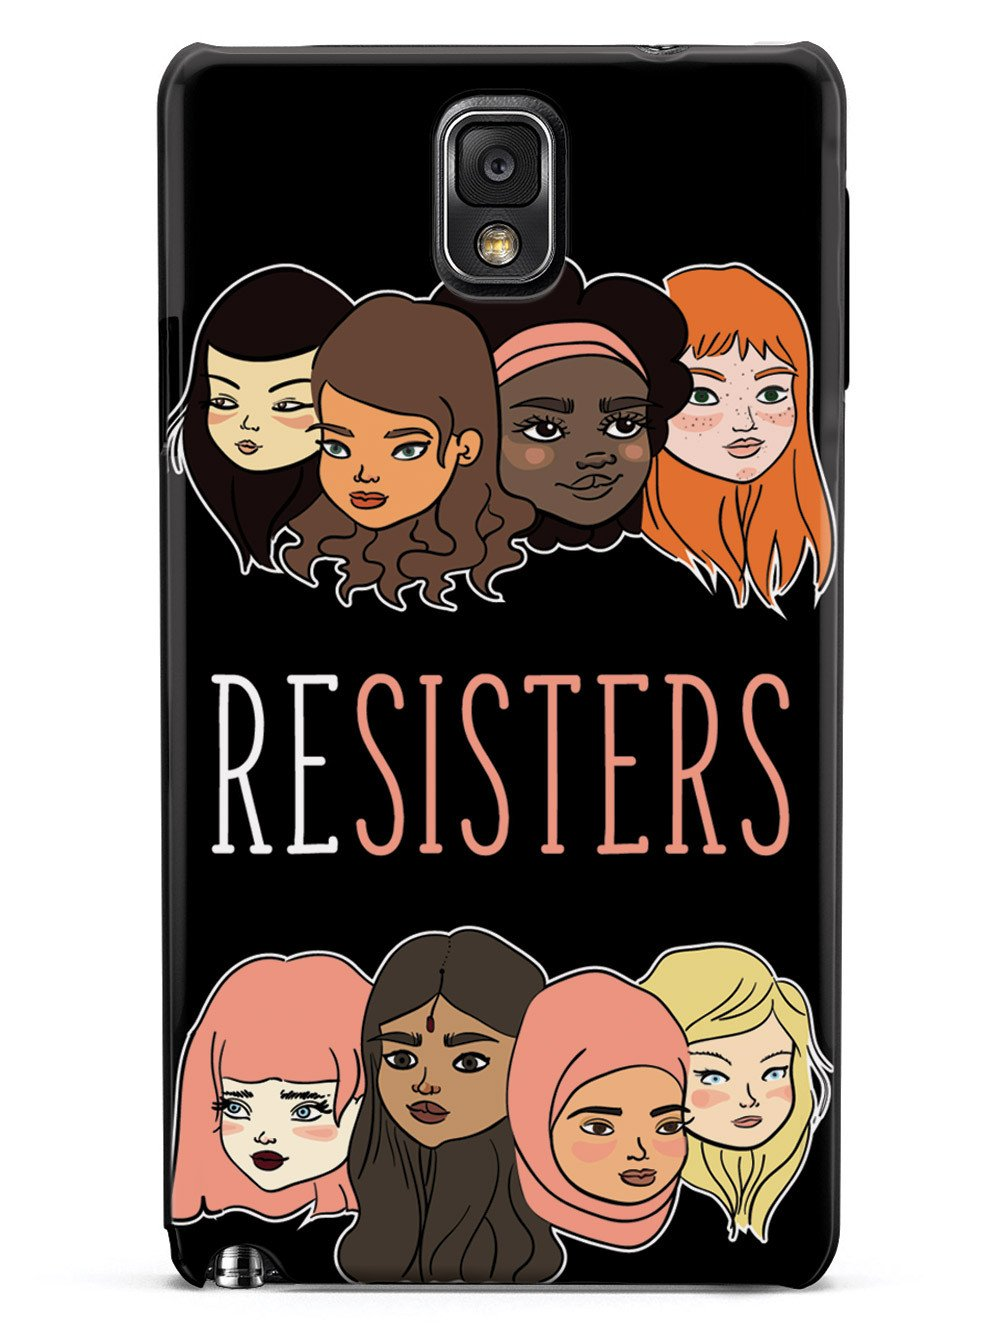 ReSISTERS - Black Case - pipercleo.com